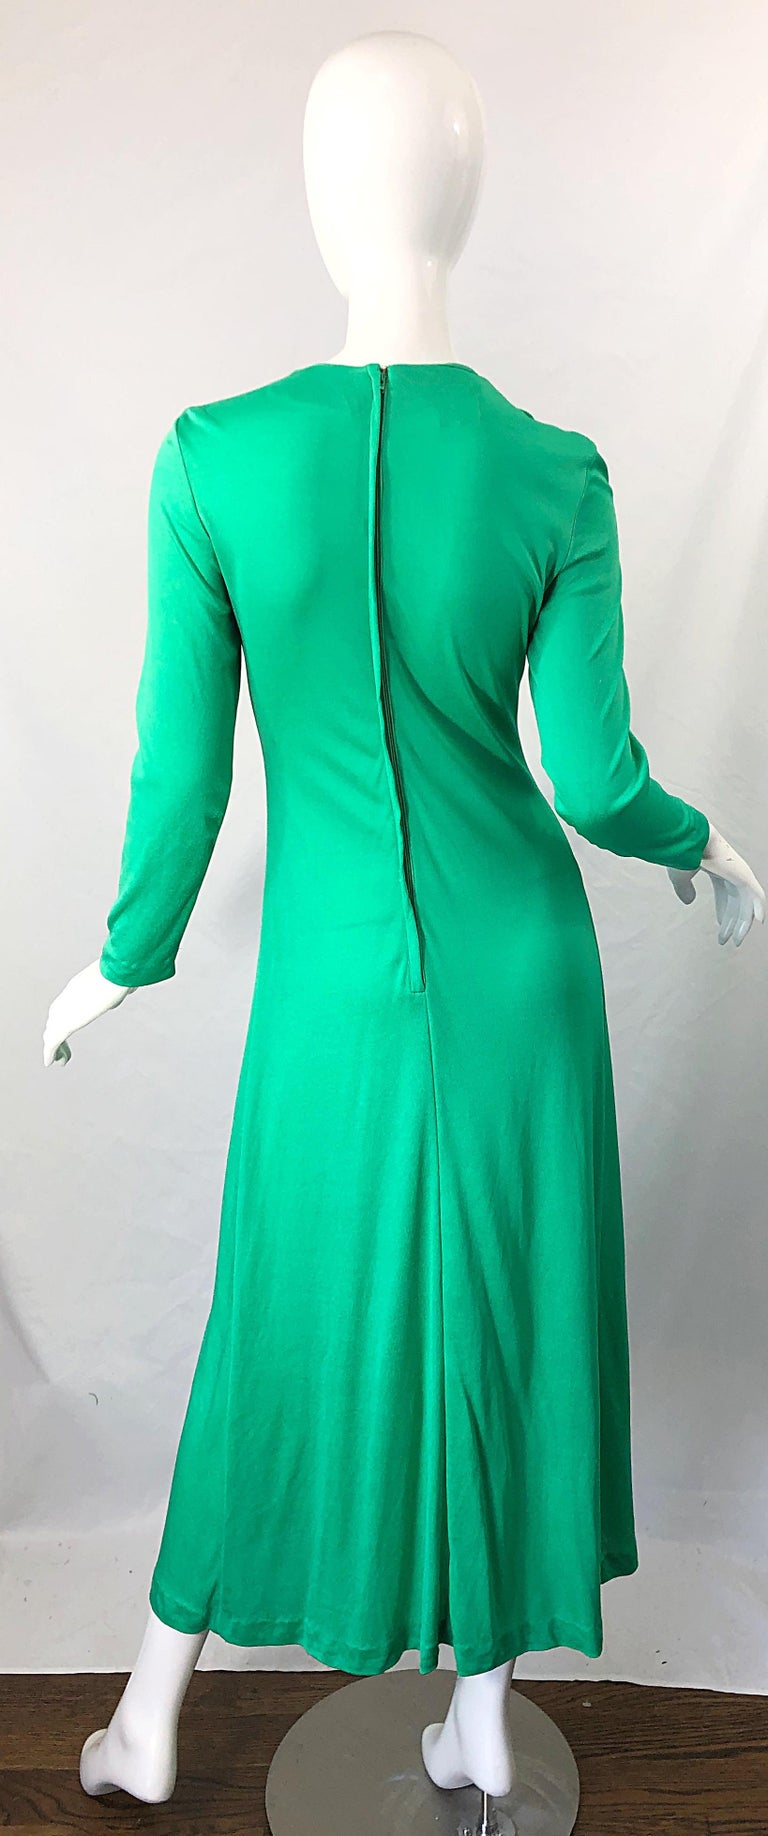 1970s Fredrick's of Hollywood Kelly Green Vintage Jersey 70s Maxi Dress For Sale 9